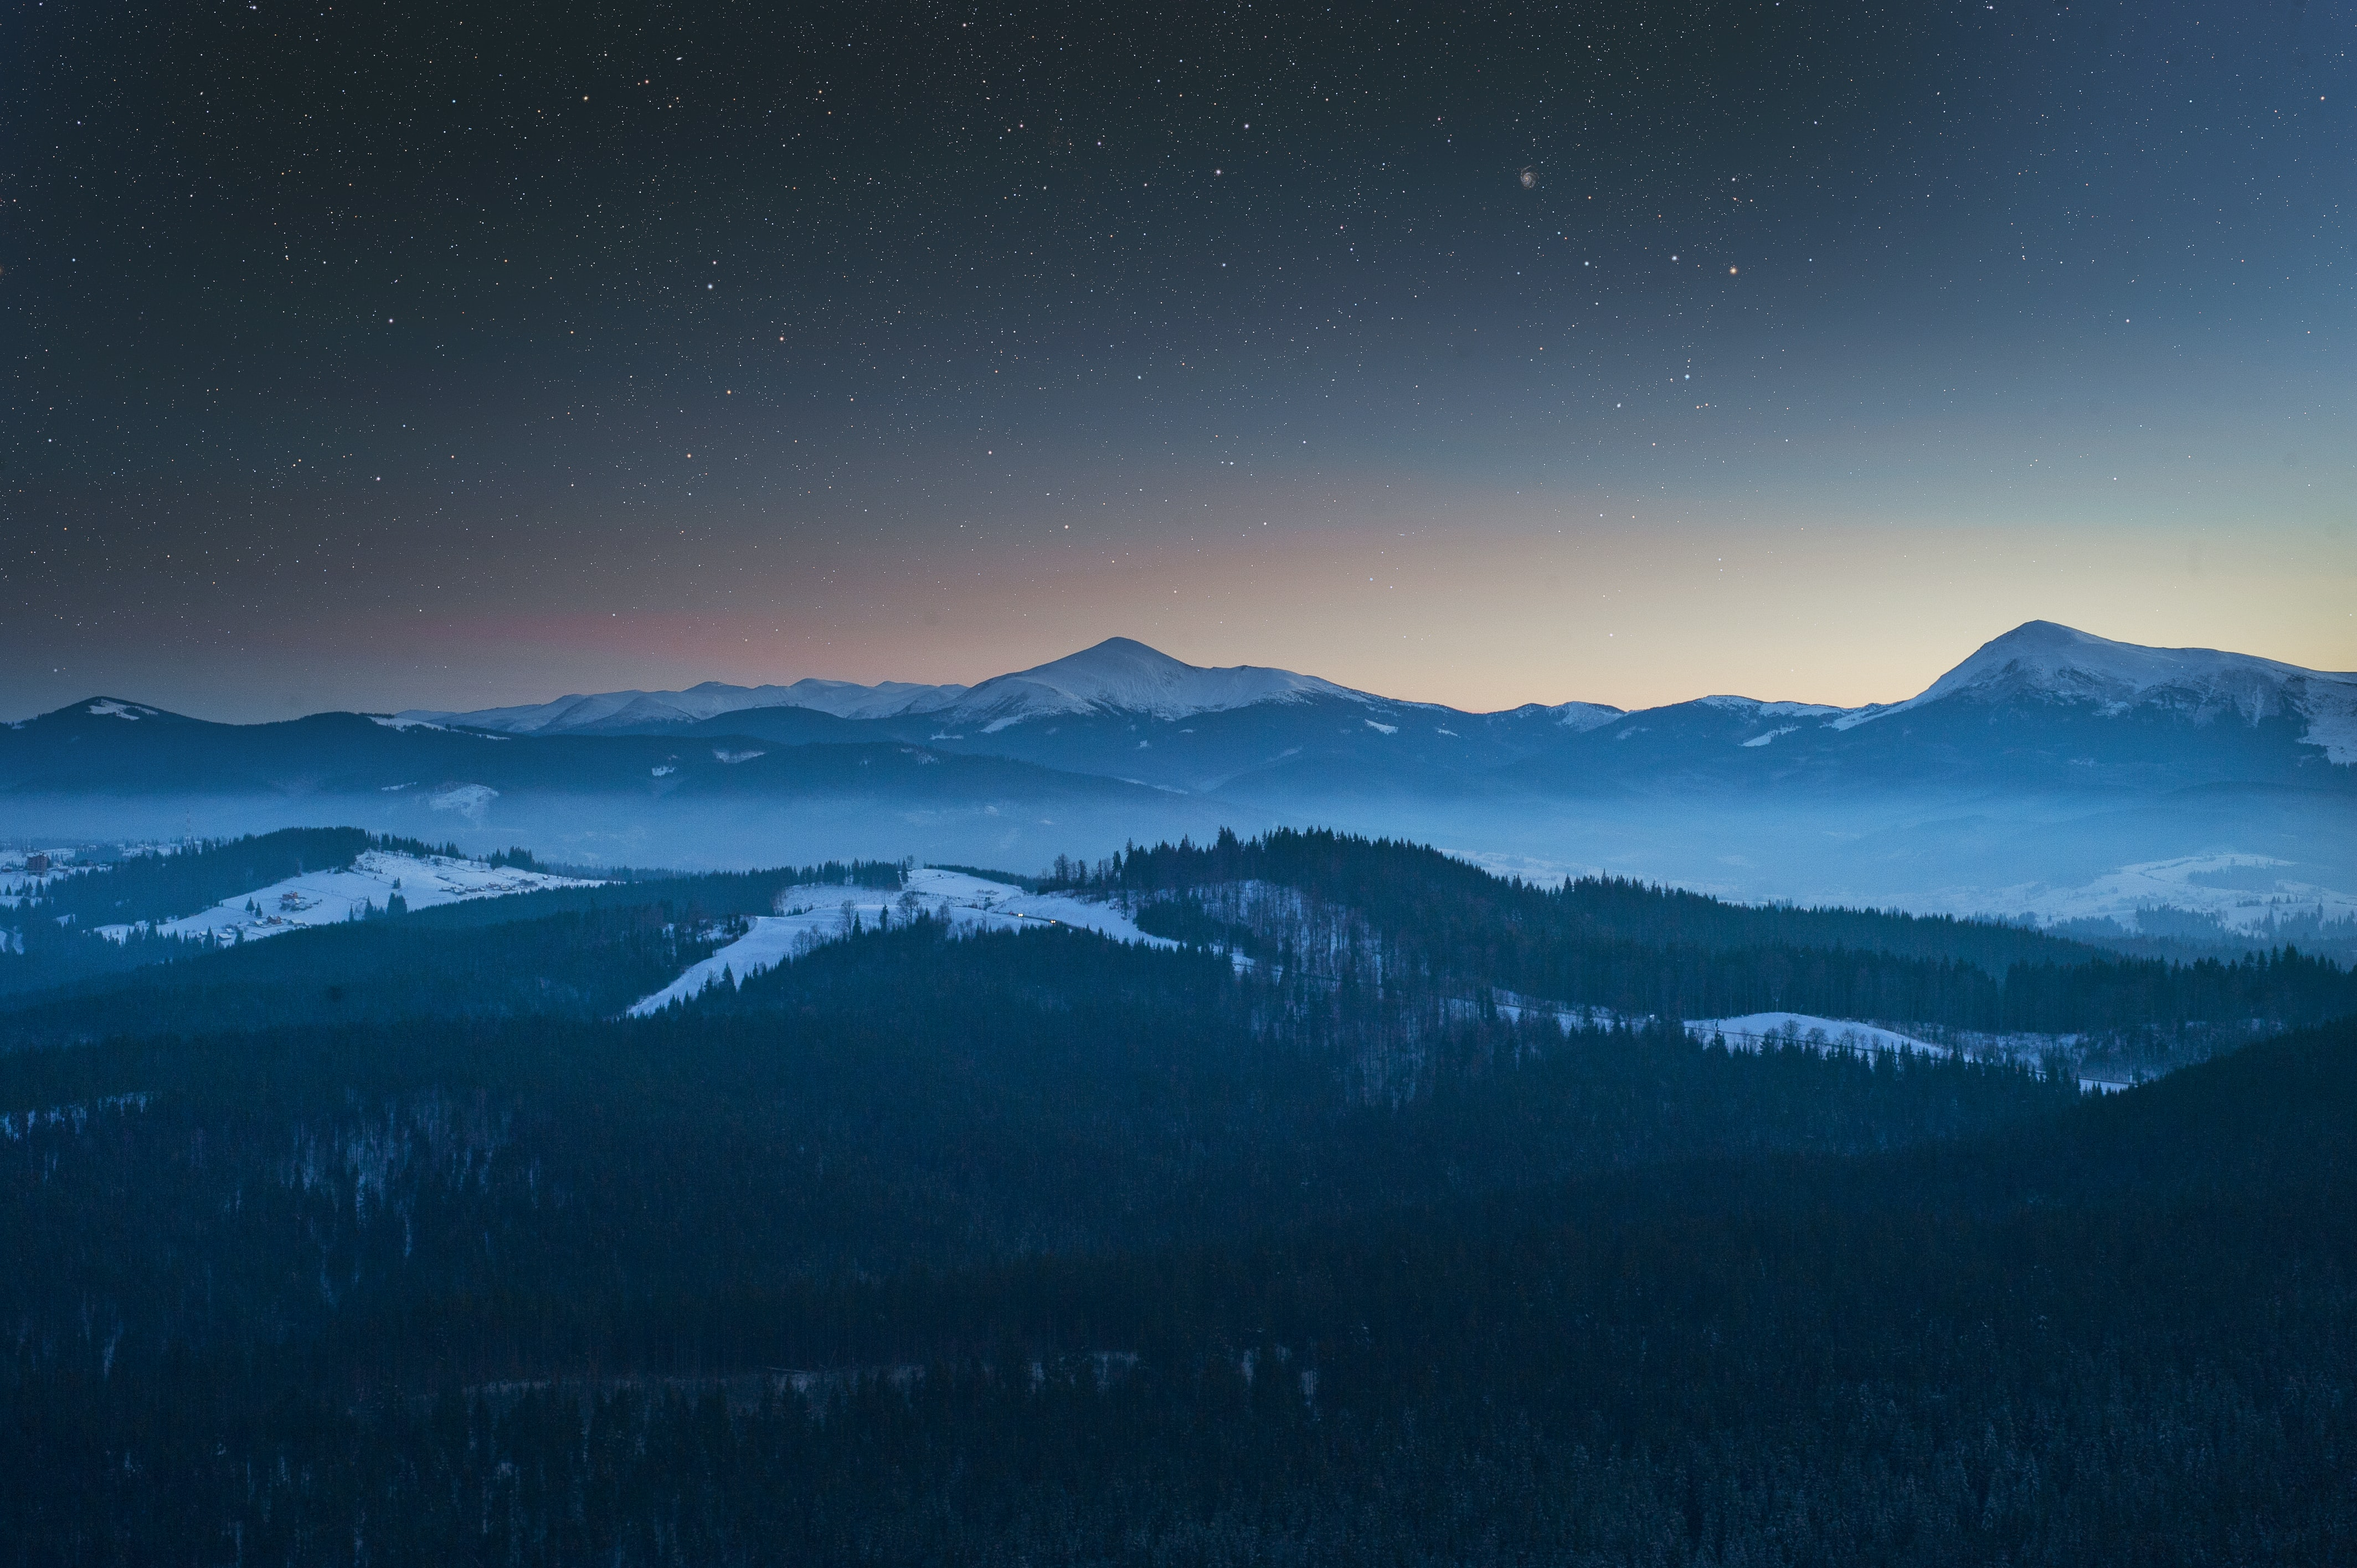 View of a starry night at Bukovel with forests and mountain ranges shrouded in the dusk